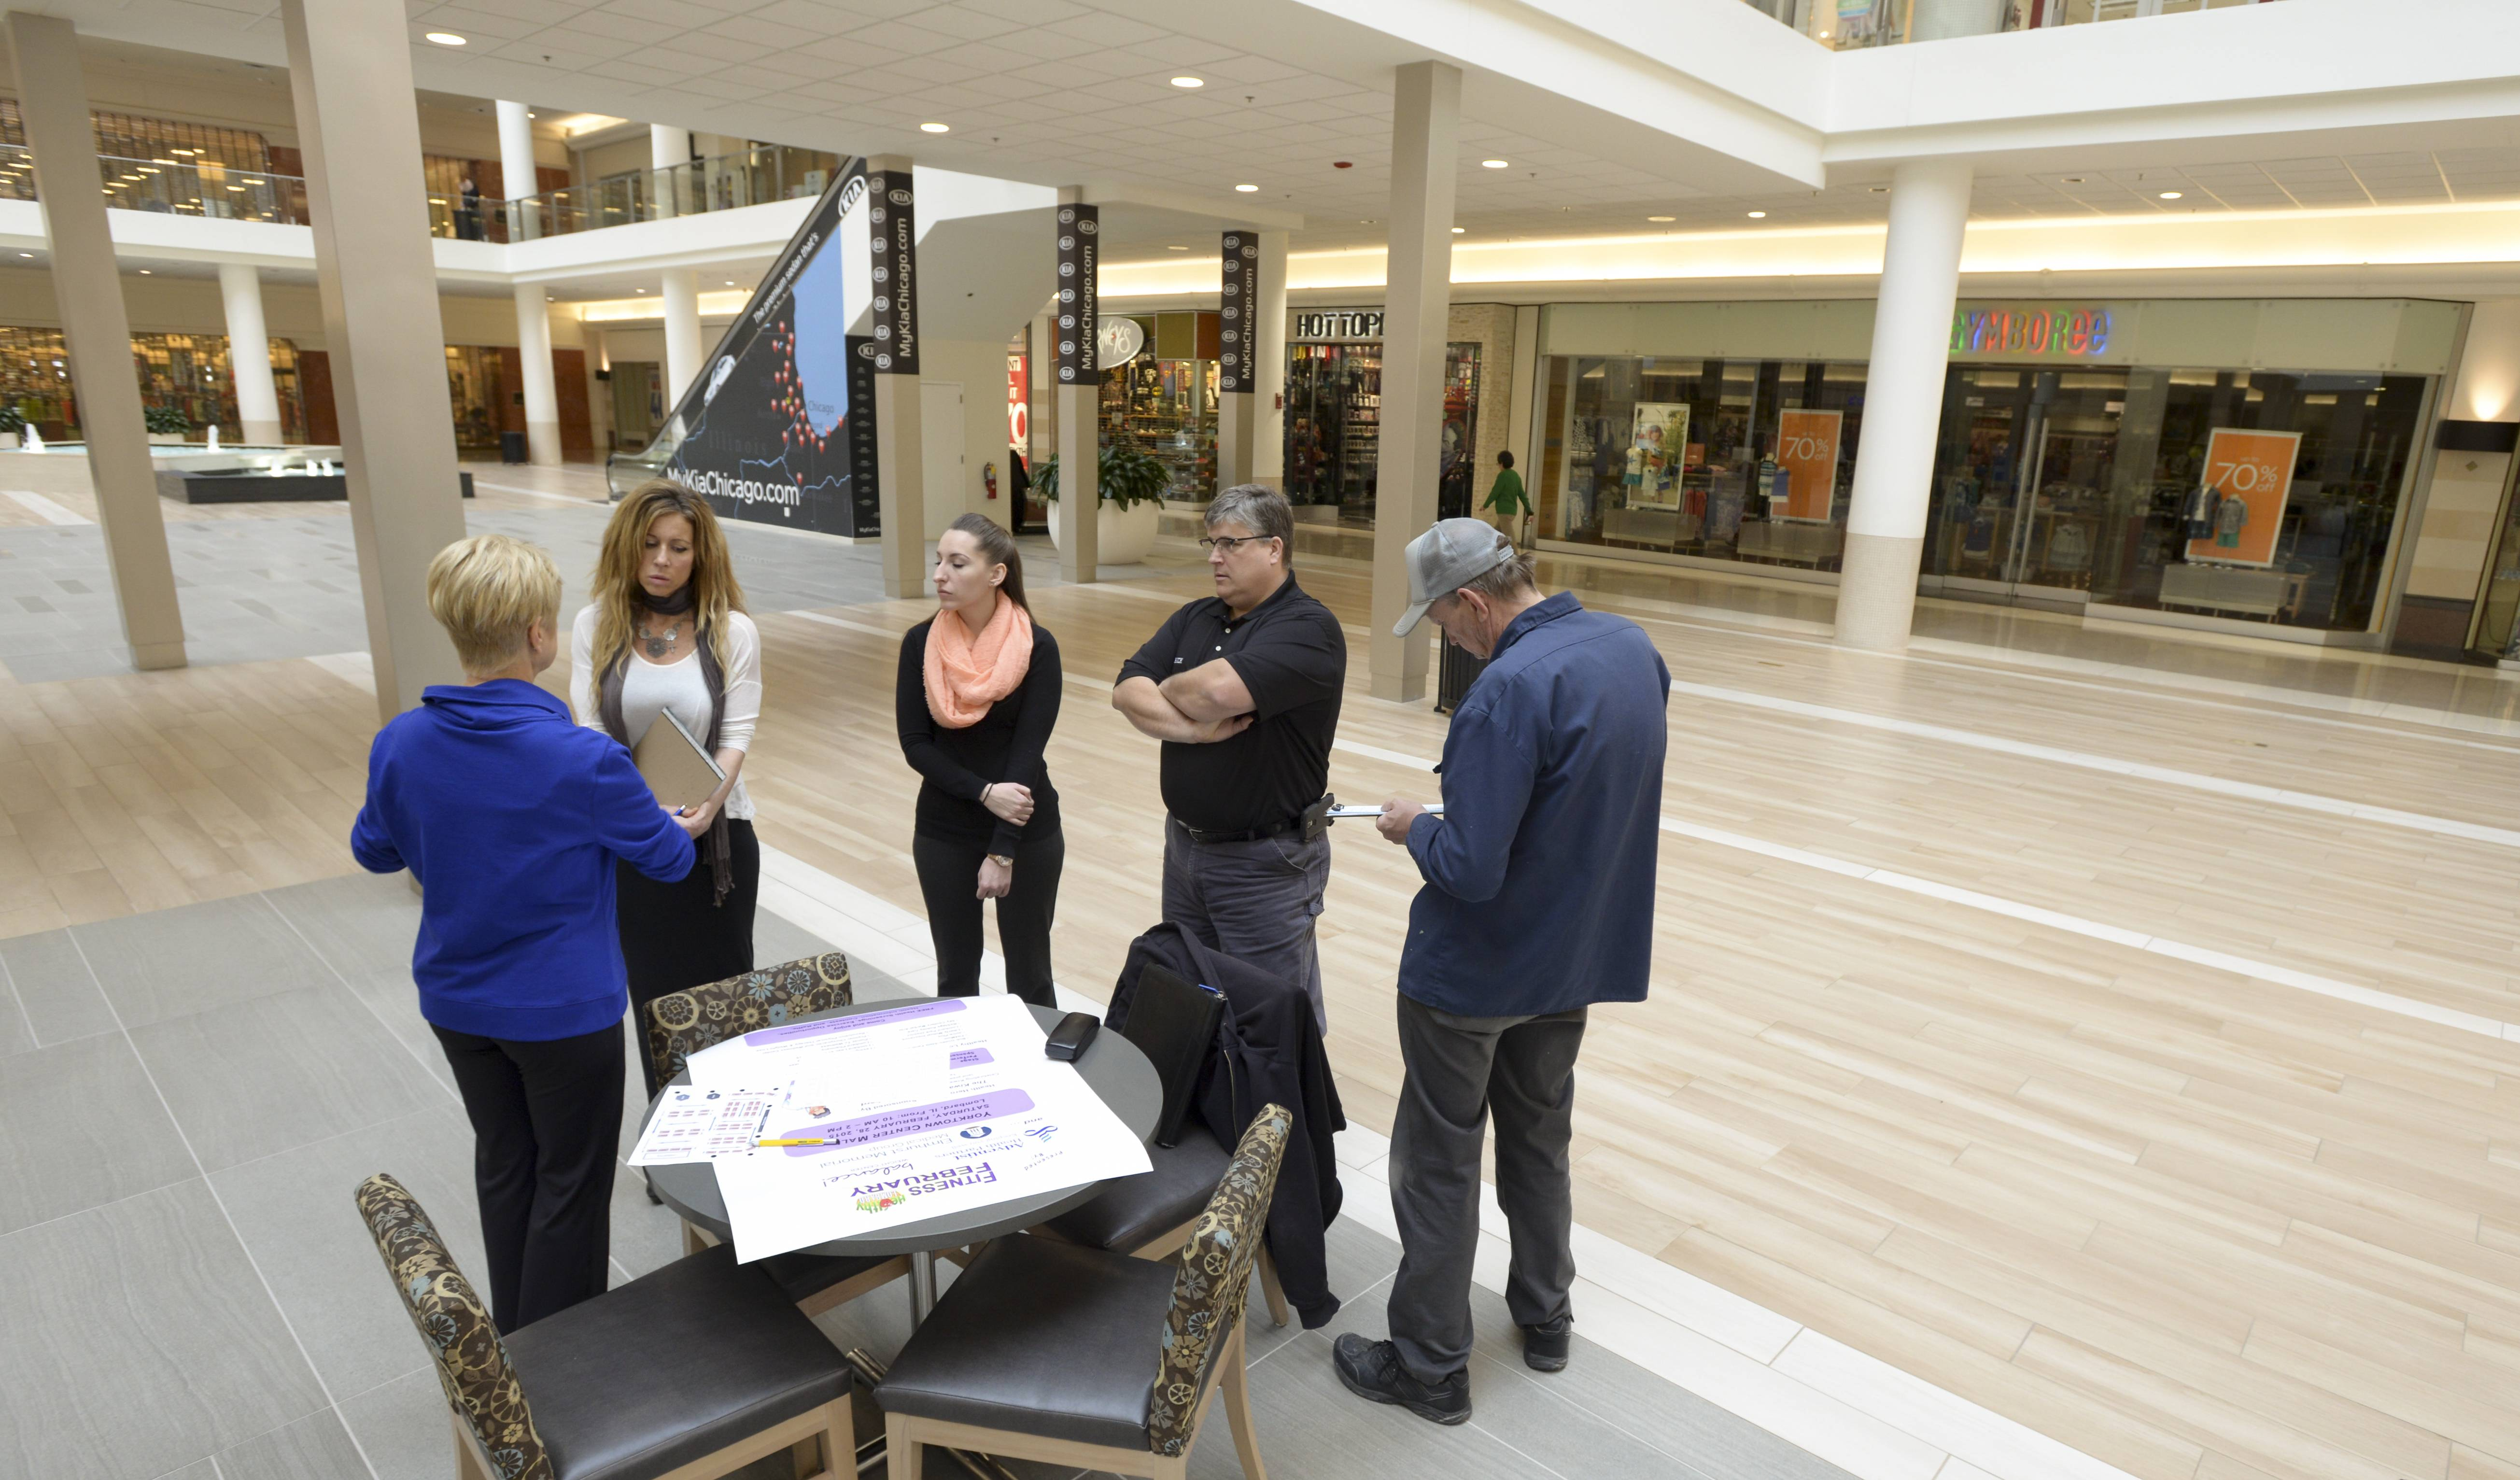 Jay Wojcik works with Yorktown Center staff on the setup of the February Fitness Fair, which will be held in the lower level center court of the mall.